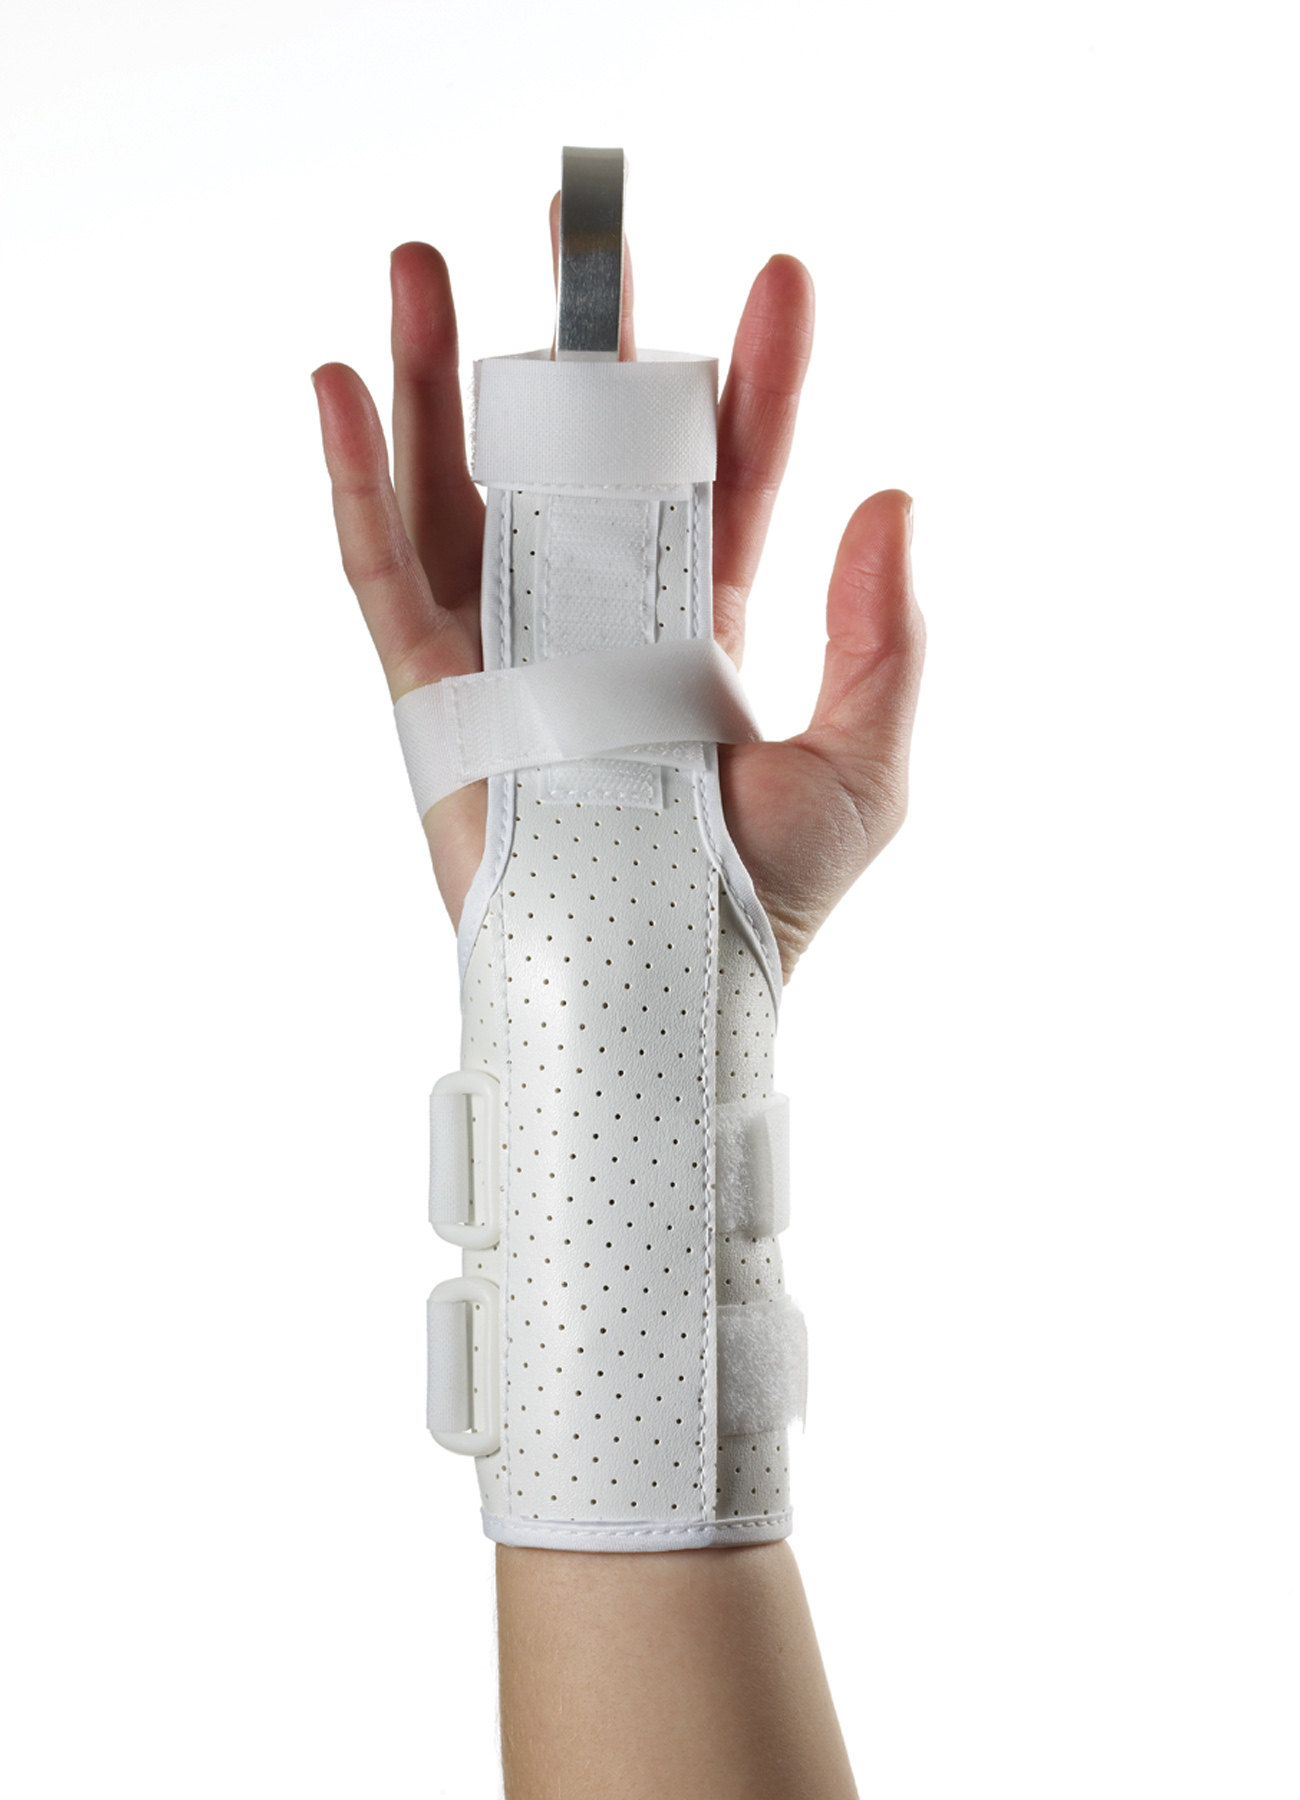 Digital Splints